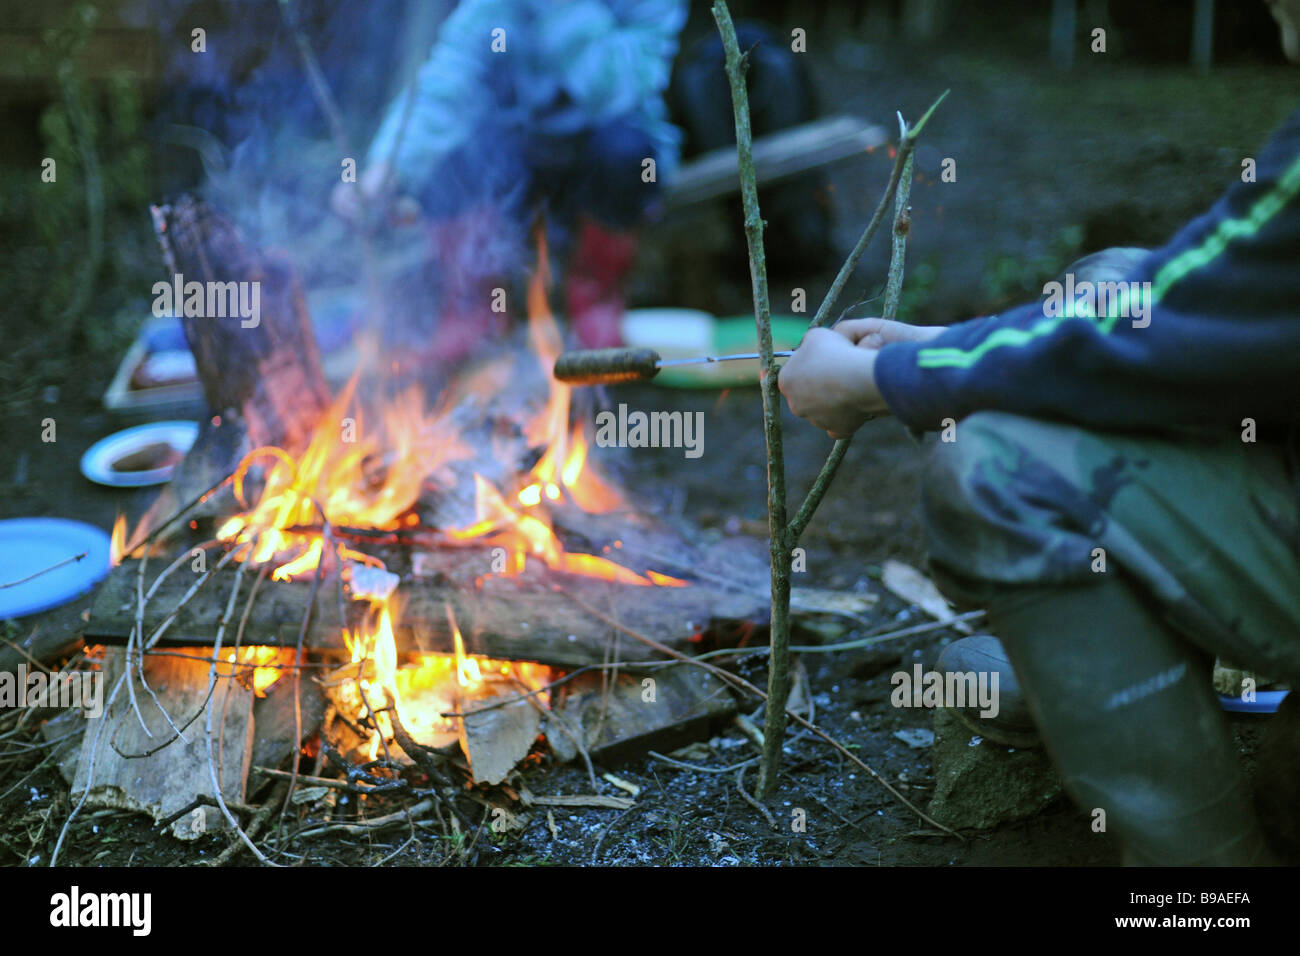 Boy cooking sausage on fire - Stock Image